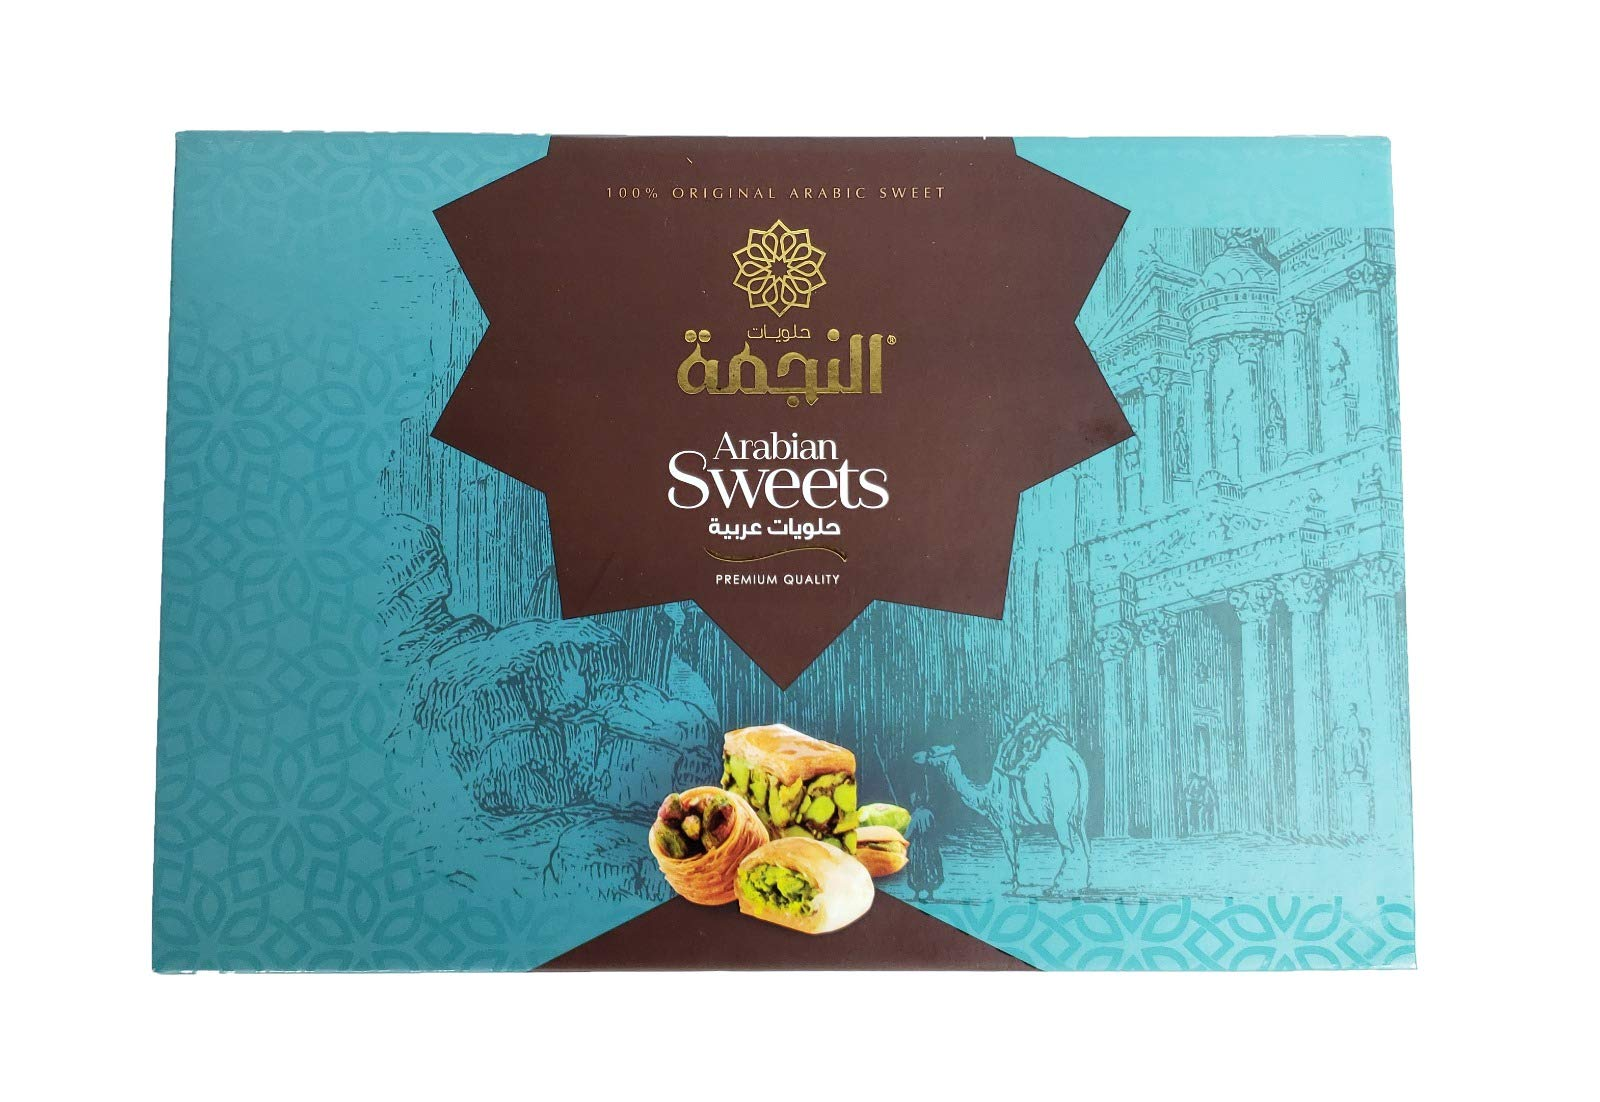 PT112 - Baklava Nuts Assorted (105-110 Pieces) (36 Oz Net, 3 lbs Gross, 12 inches x 8 inches x 2 inches) (Oglu) - Baklava Pastry Sweets in Very Classy Gift Box (Mix Baklava Nuts, 36 Oz Net, PT112) by Turkish Delight (Image #3)